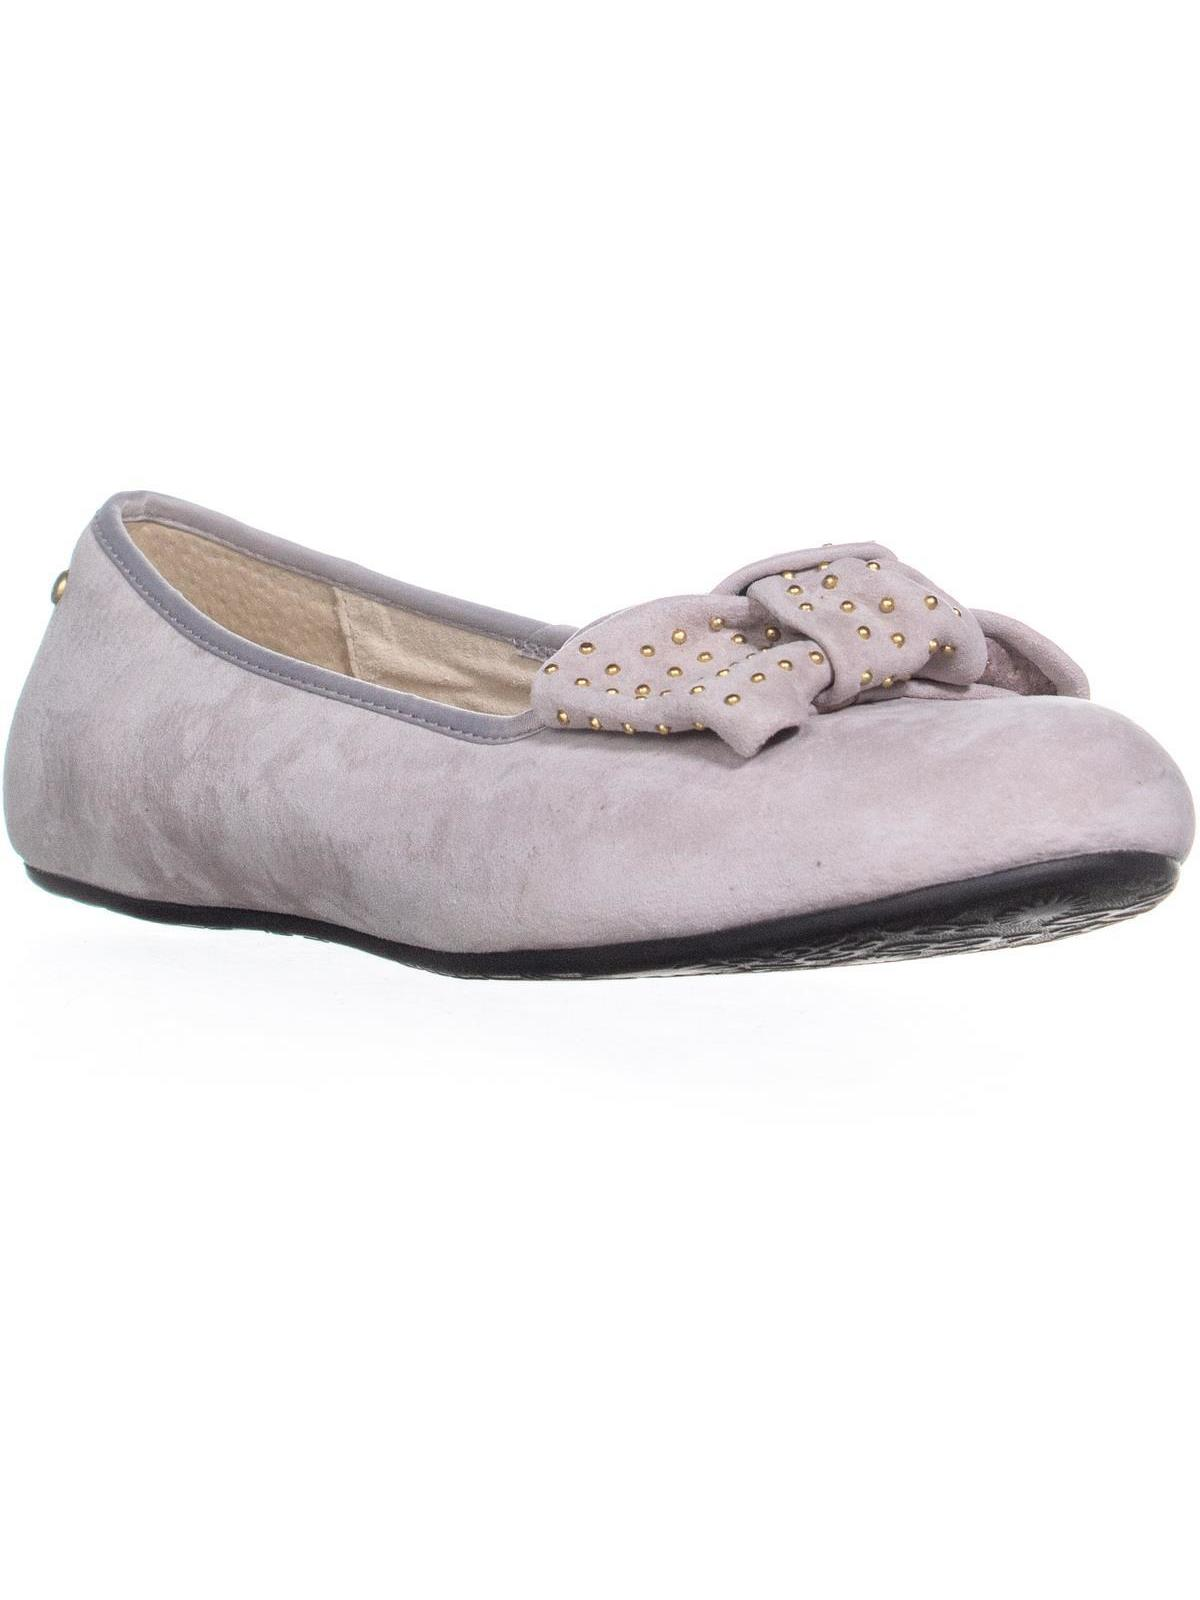 7e5886b5d52 Womens UGG Australia Alloway Studded Bow Flats, White, 8 US / 39 EU